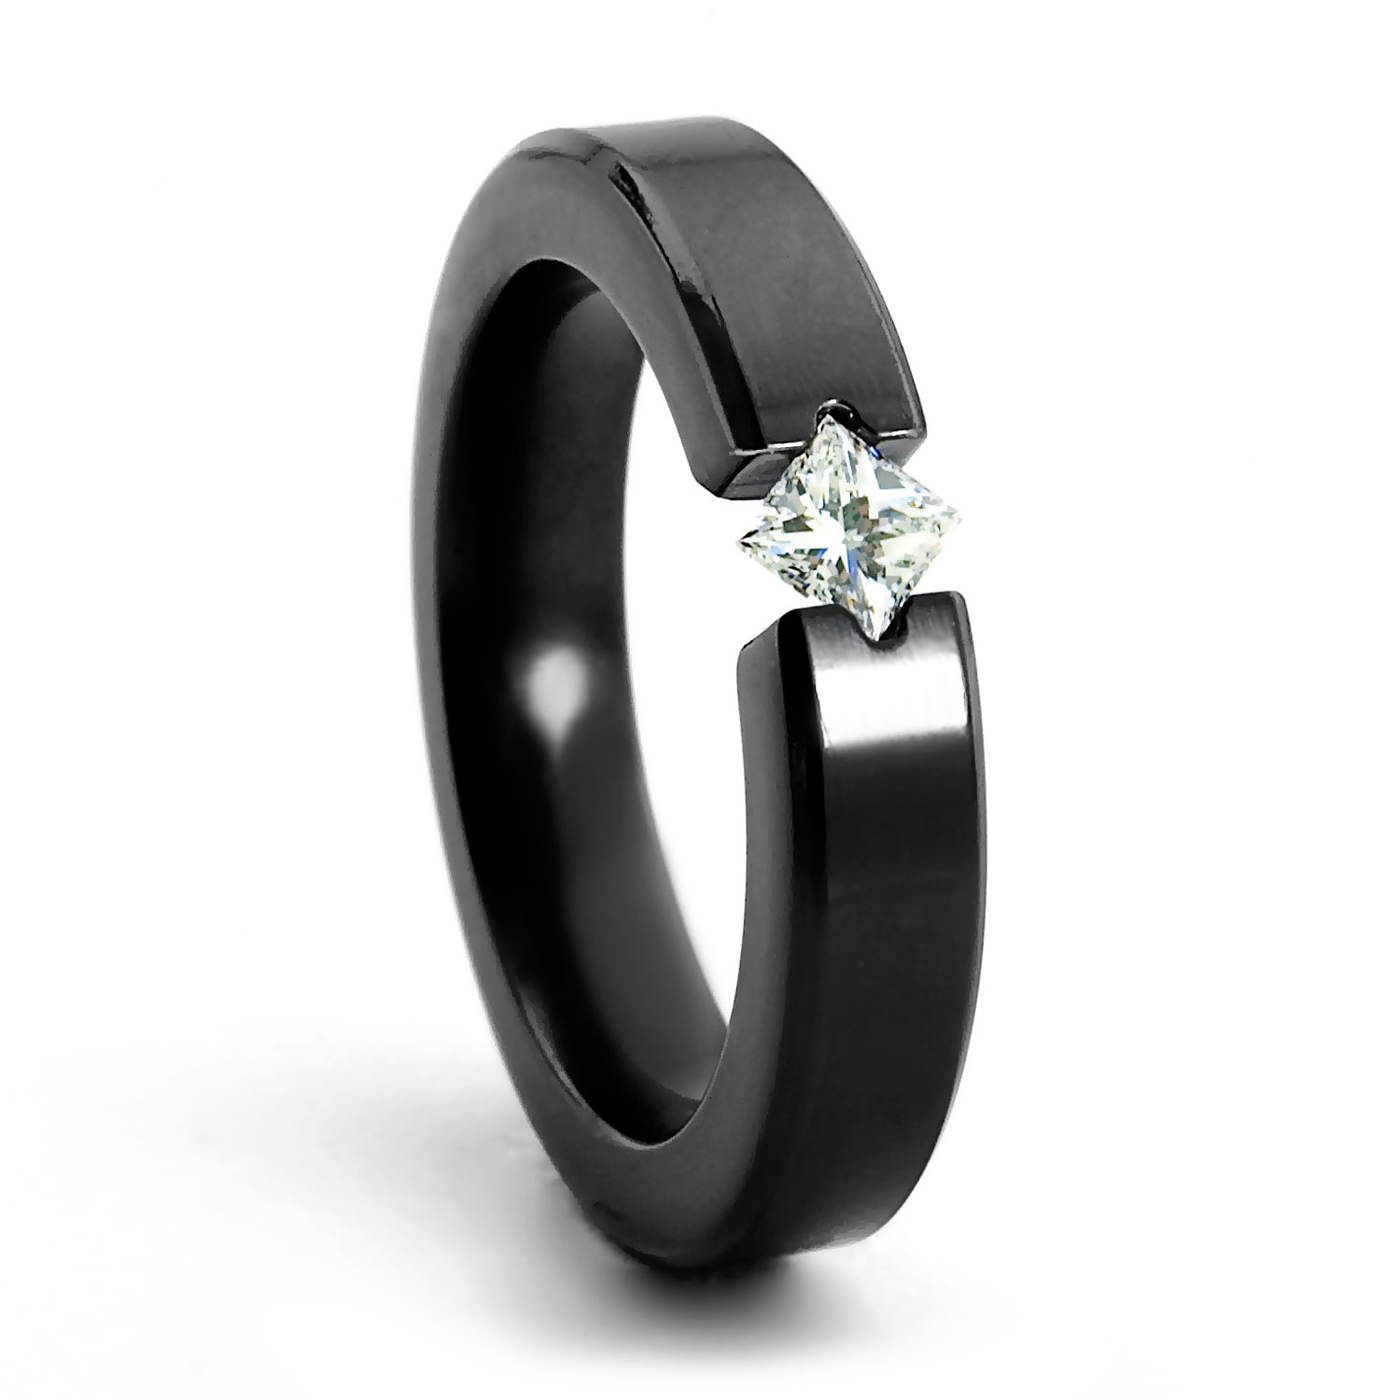 titanium engagement rings allure black zirconium diamond engagement ring - princess cut - 4mm ipyfxrh